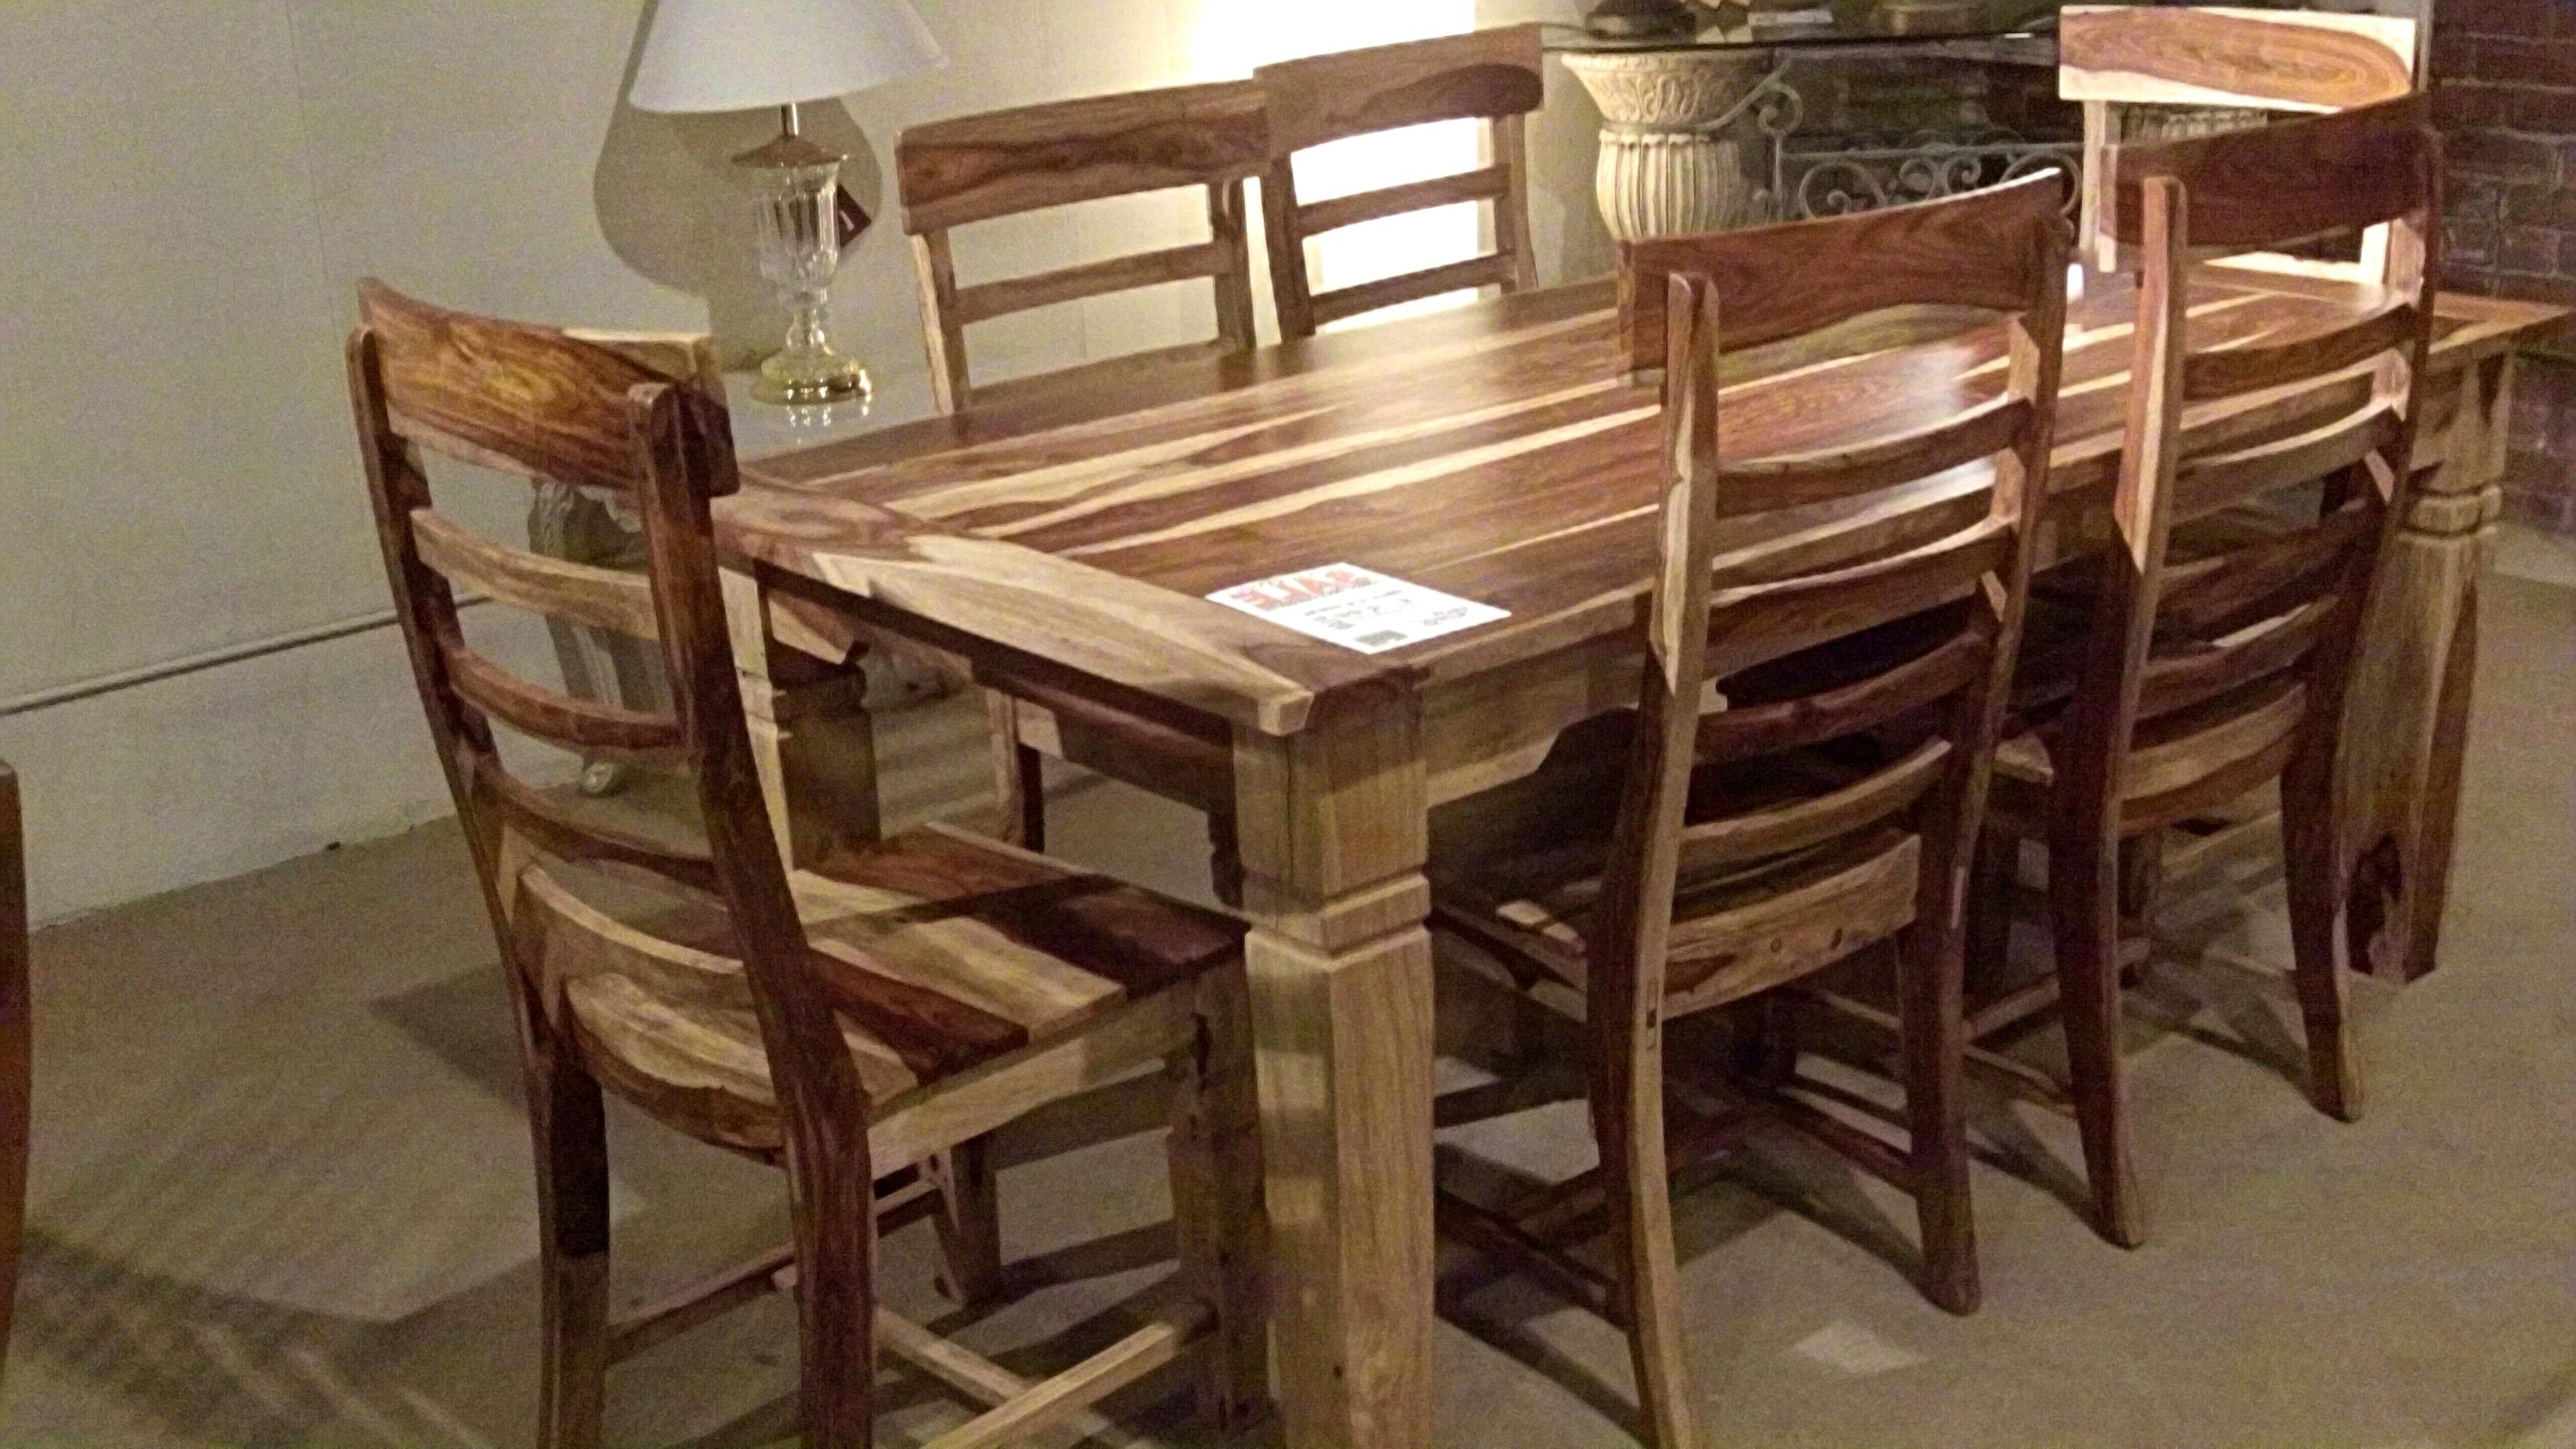 2017 Sheesham Wood Dining Chairs Inside Phenomenal Sheesham Wood Dining Table Cm (View 24 of 25)